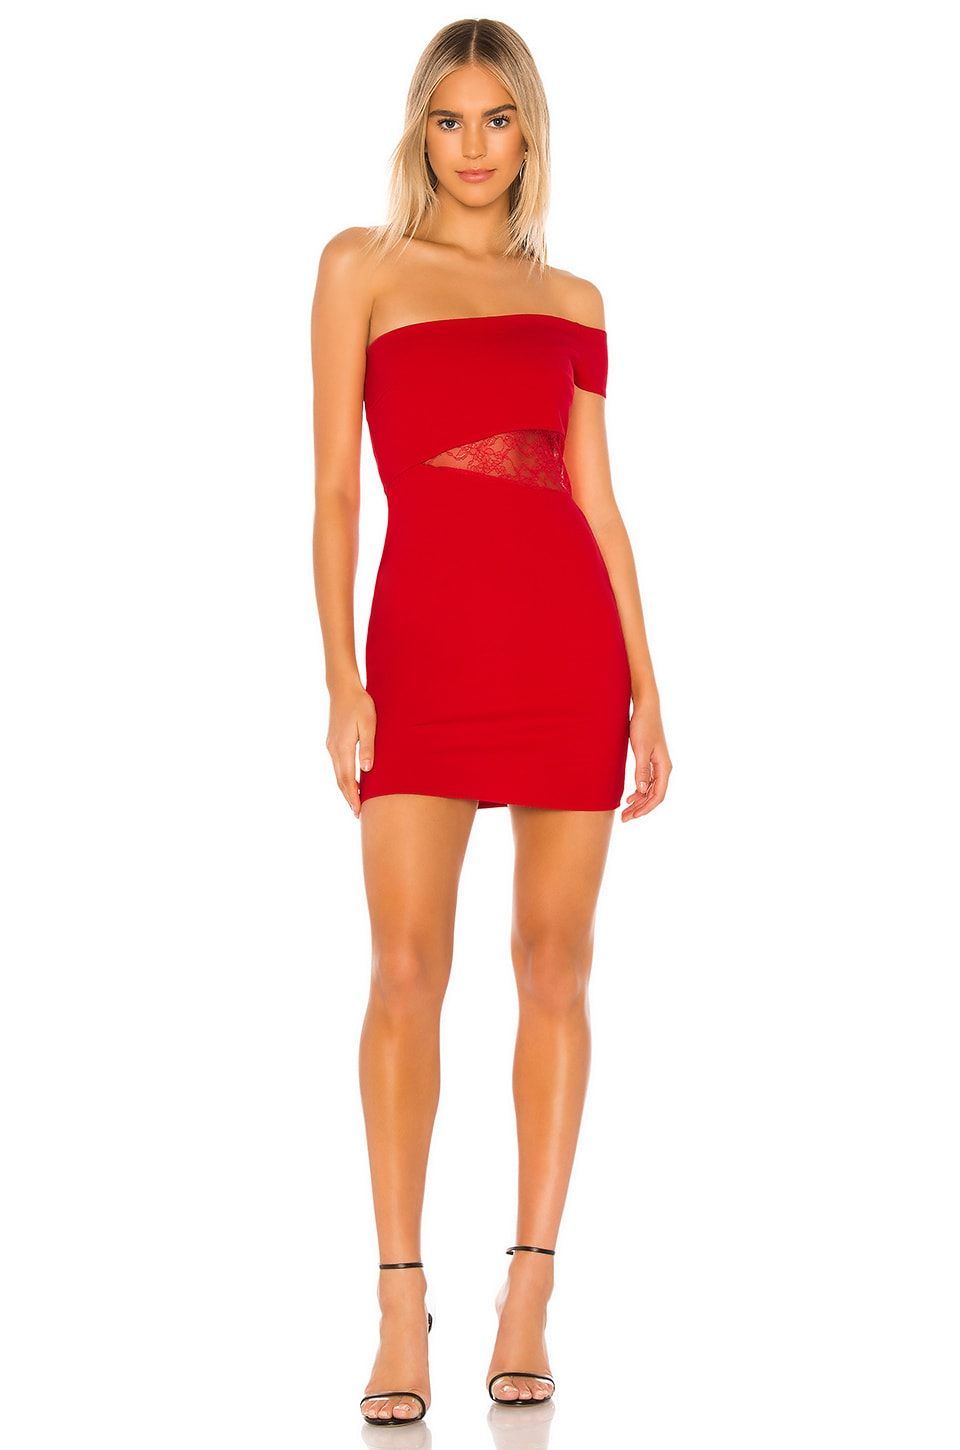 Lovers + Friends Duncan Mini Dress in Cherry Red